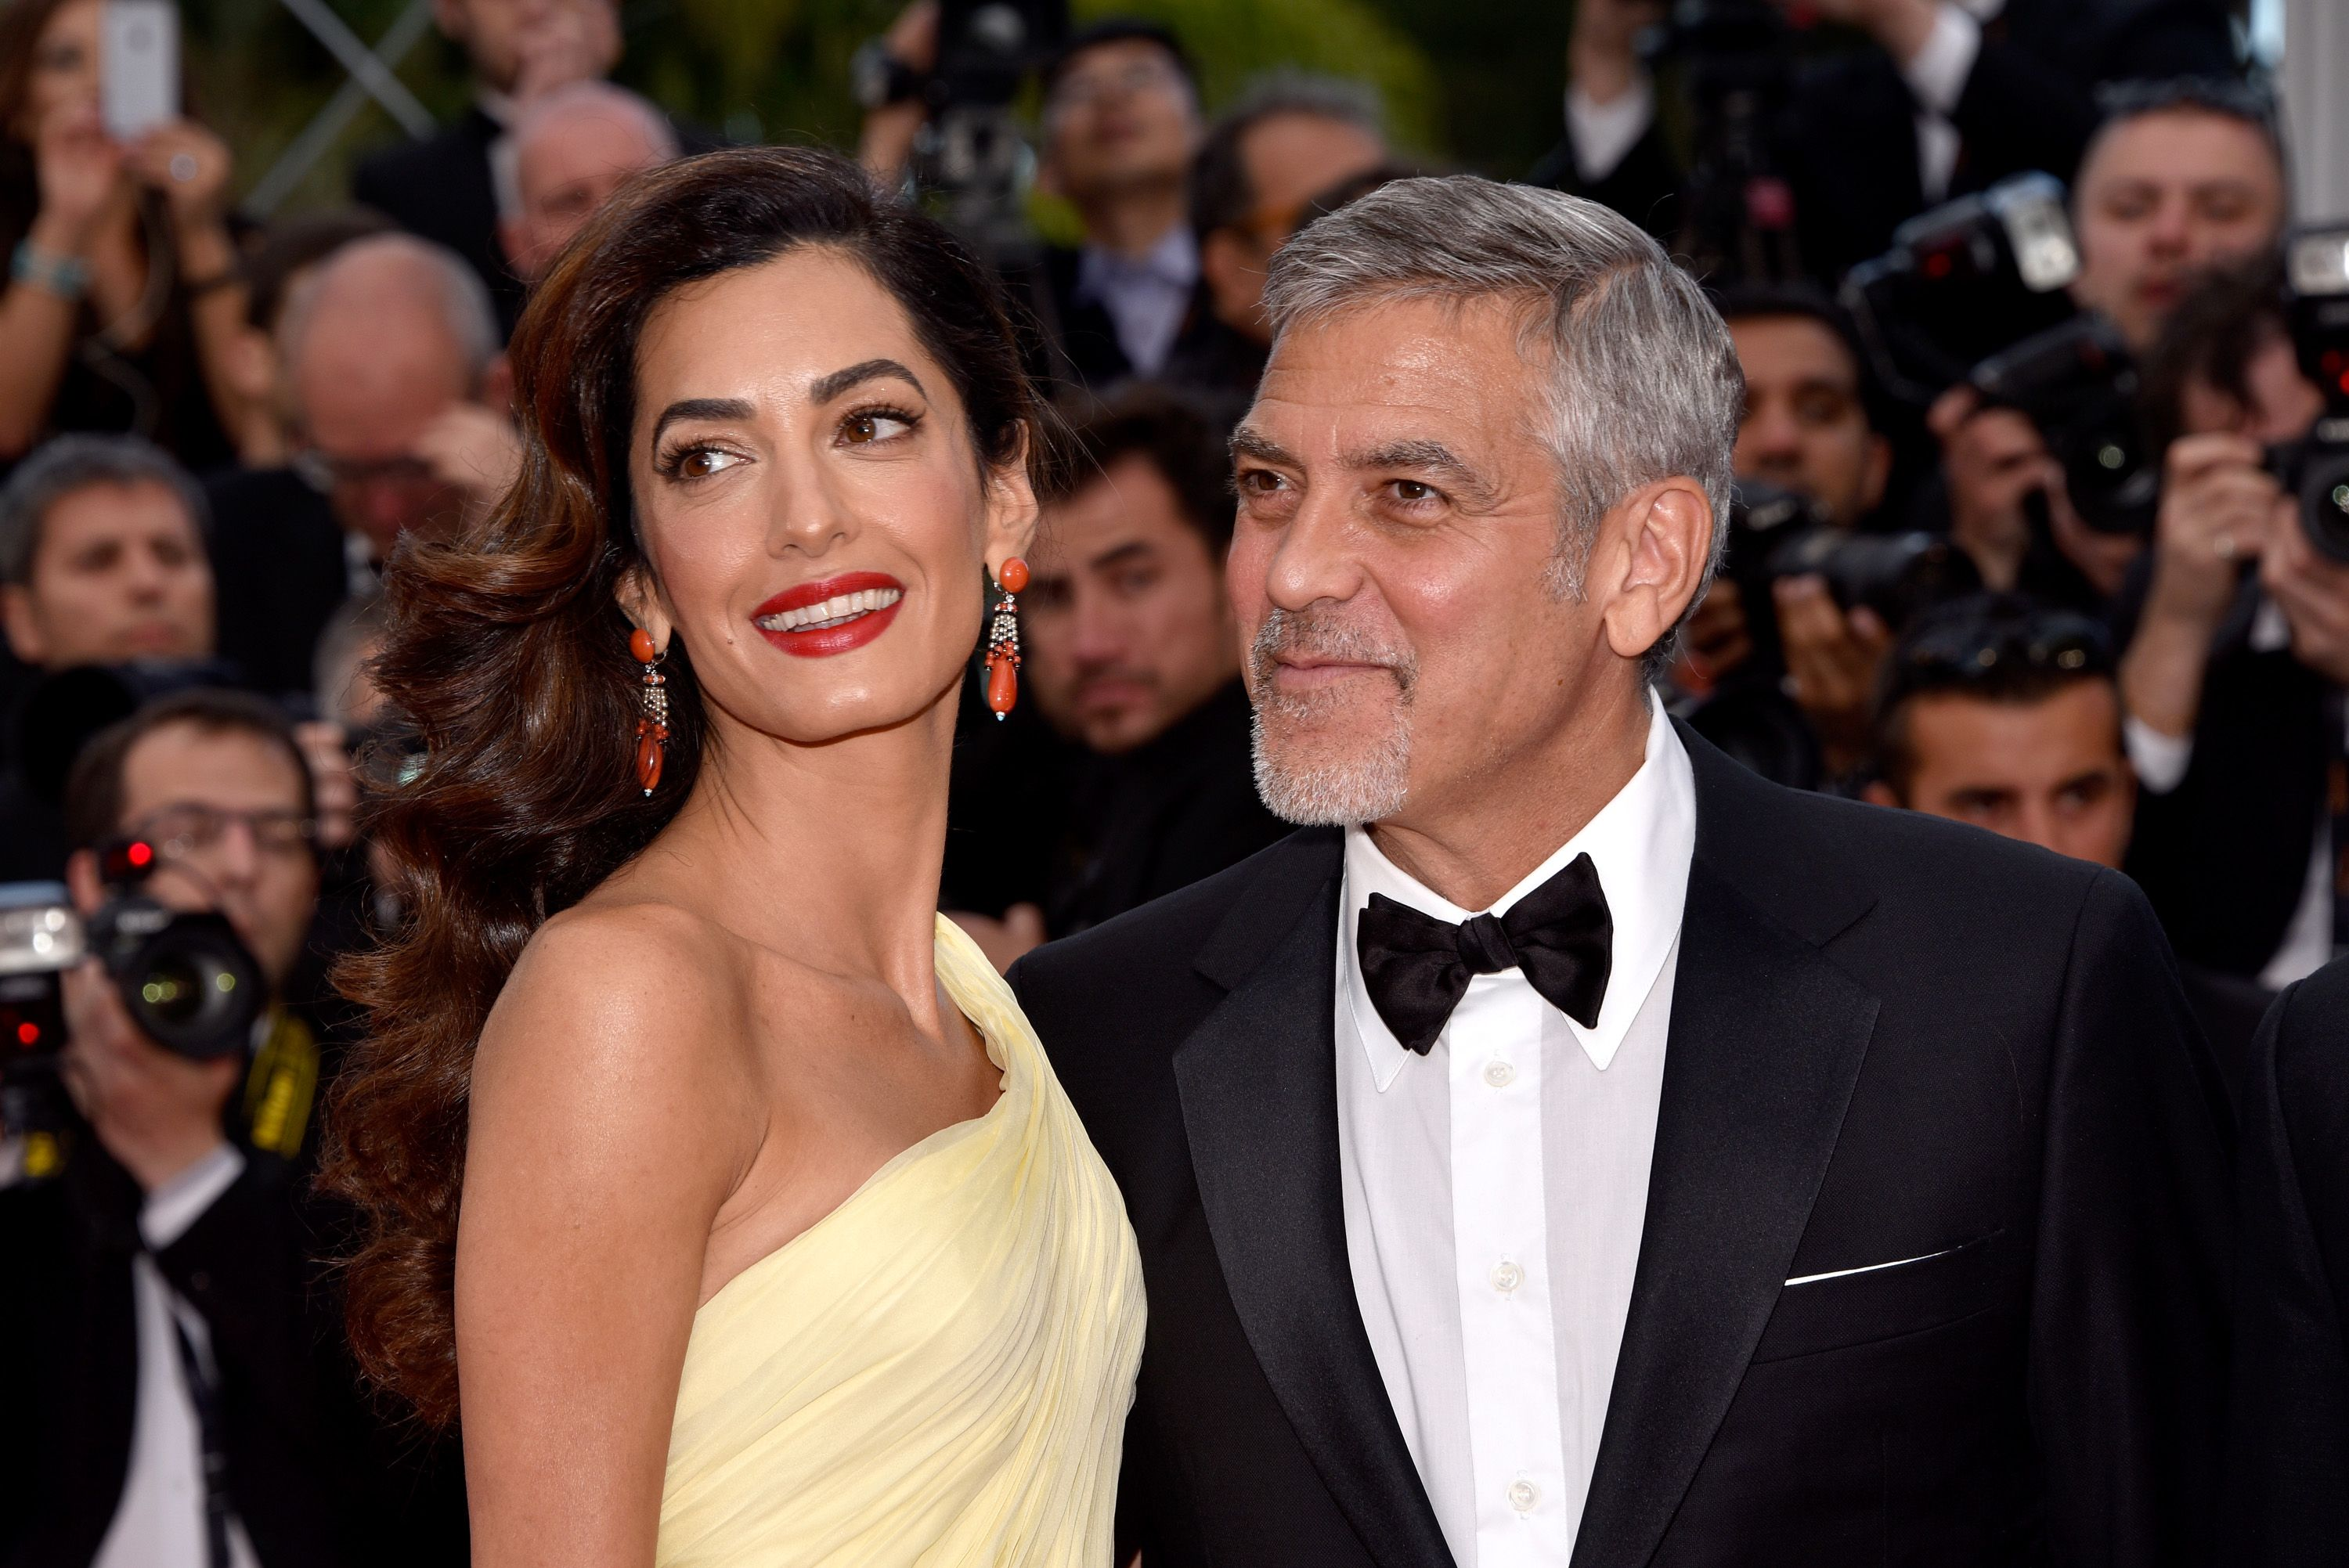 Who is george clooney dating now 2013